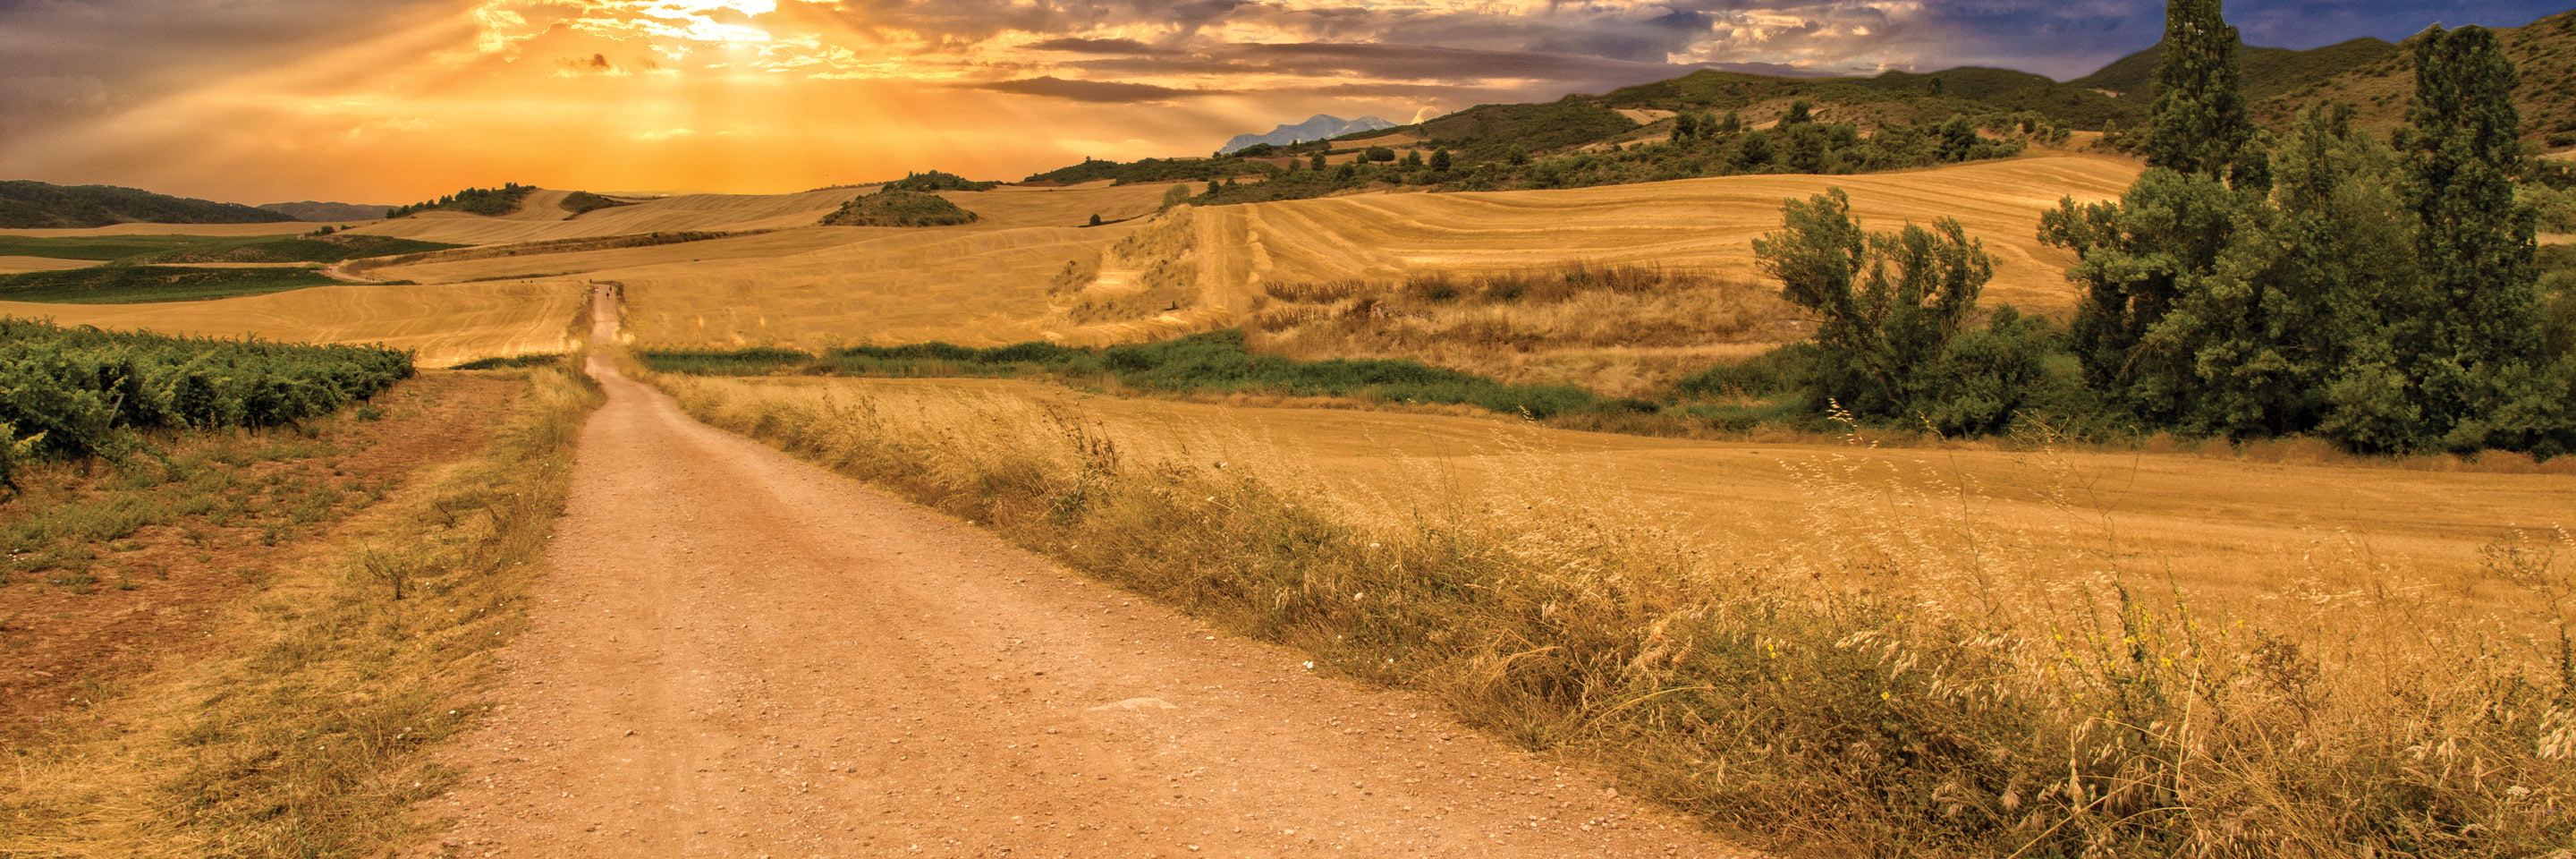 The Camino, a Walking Journey for the Soul